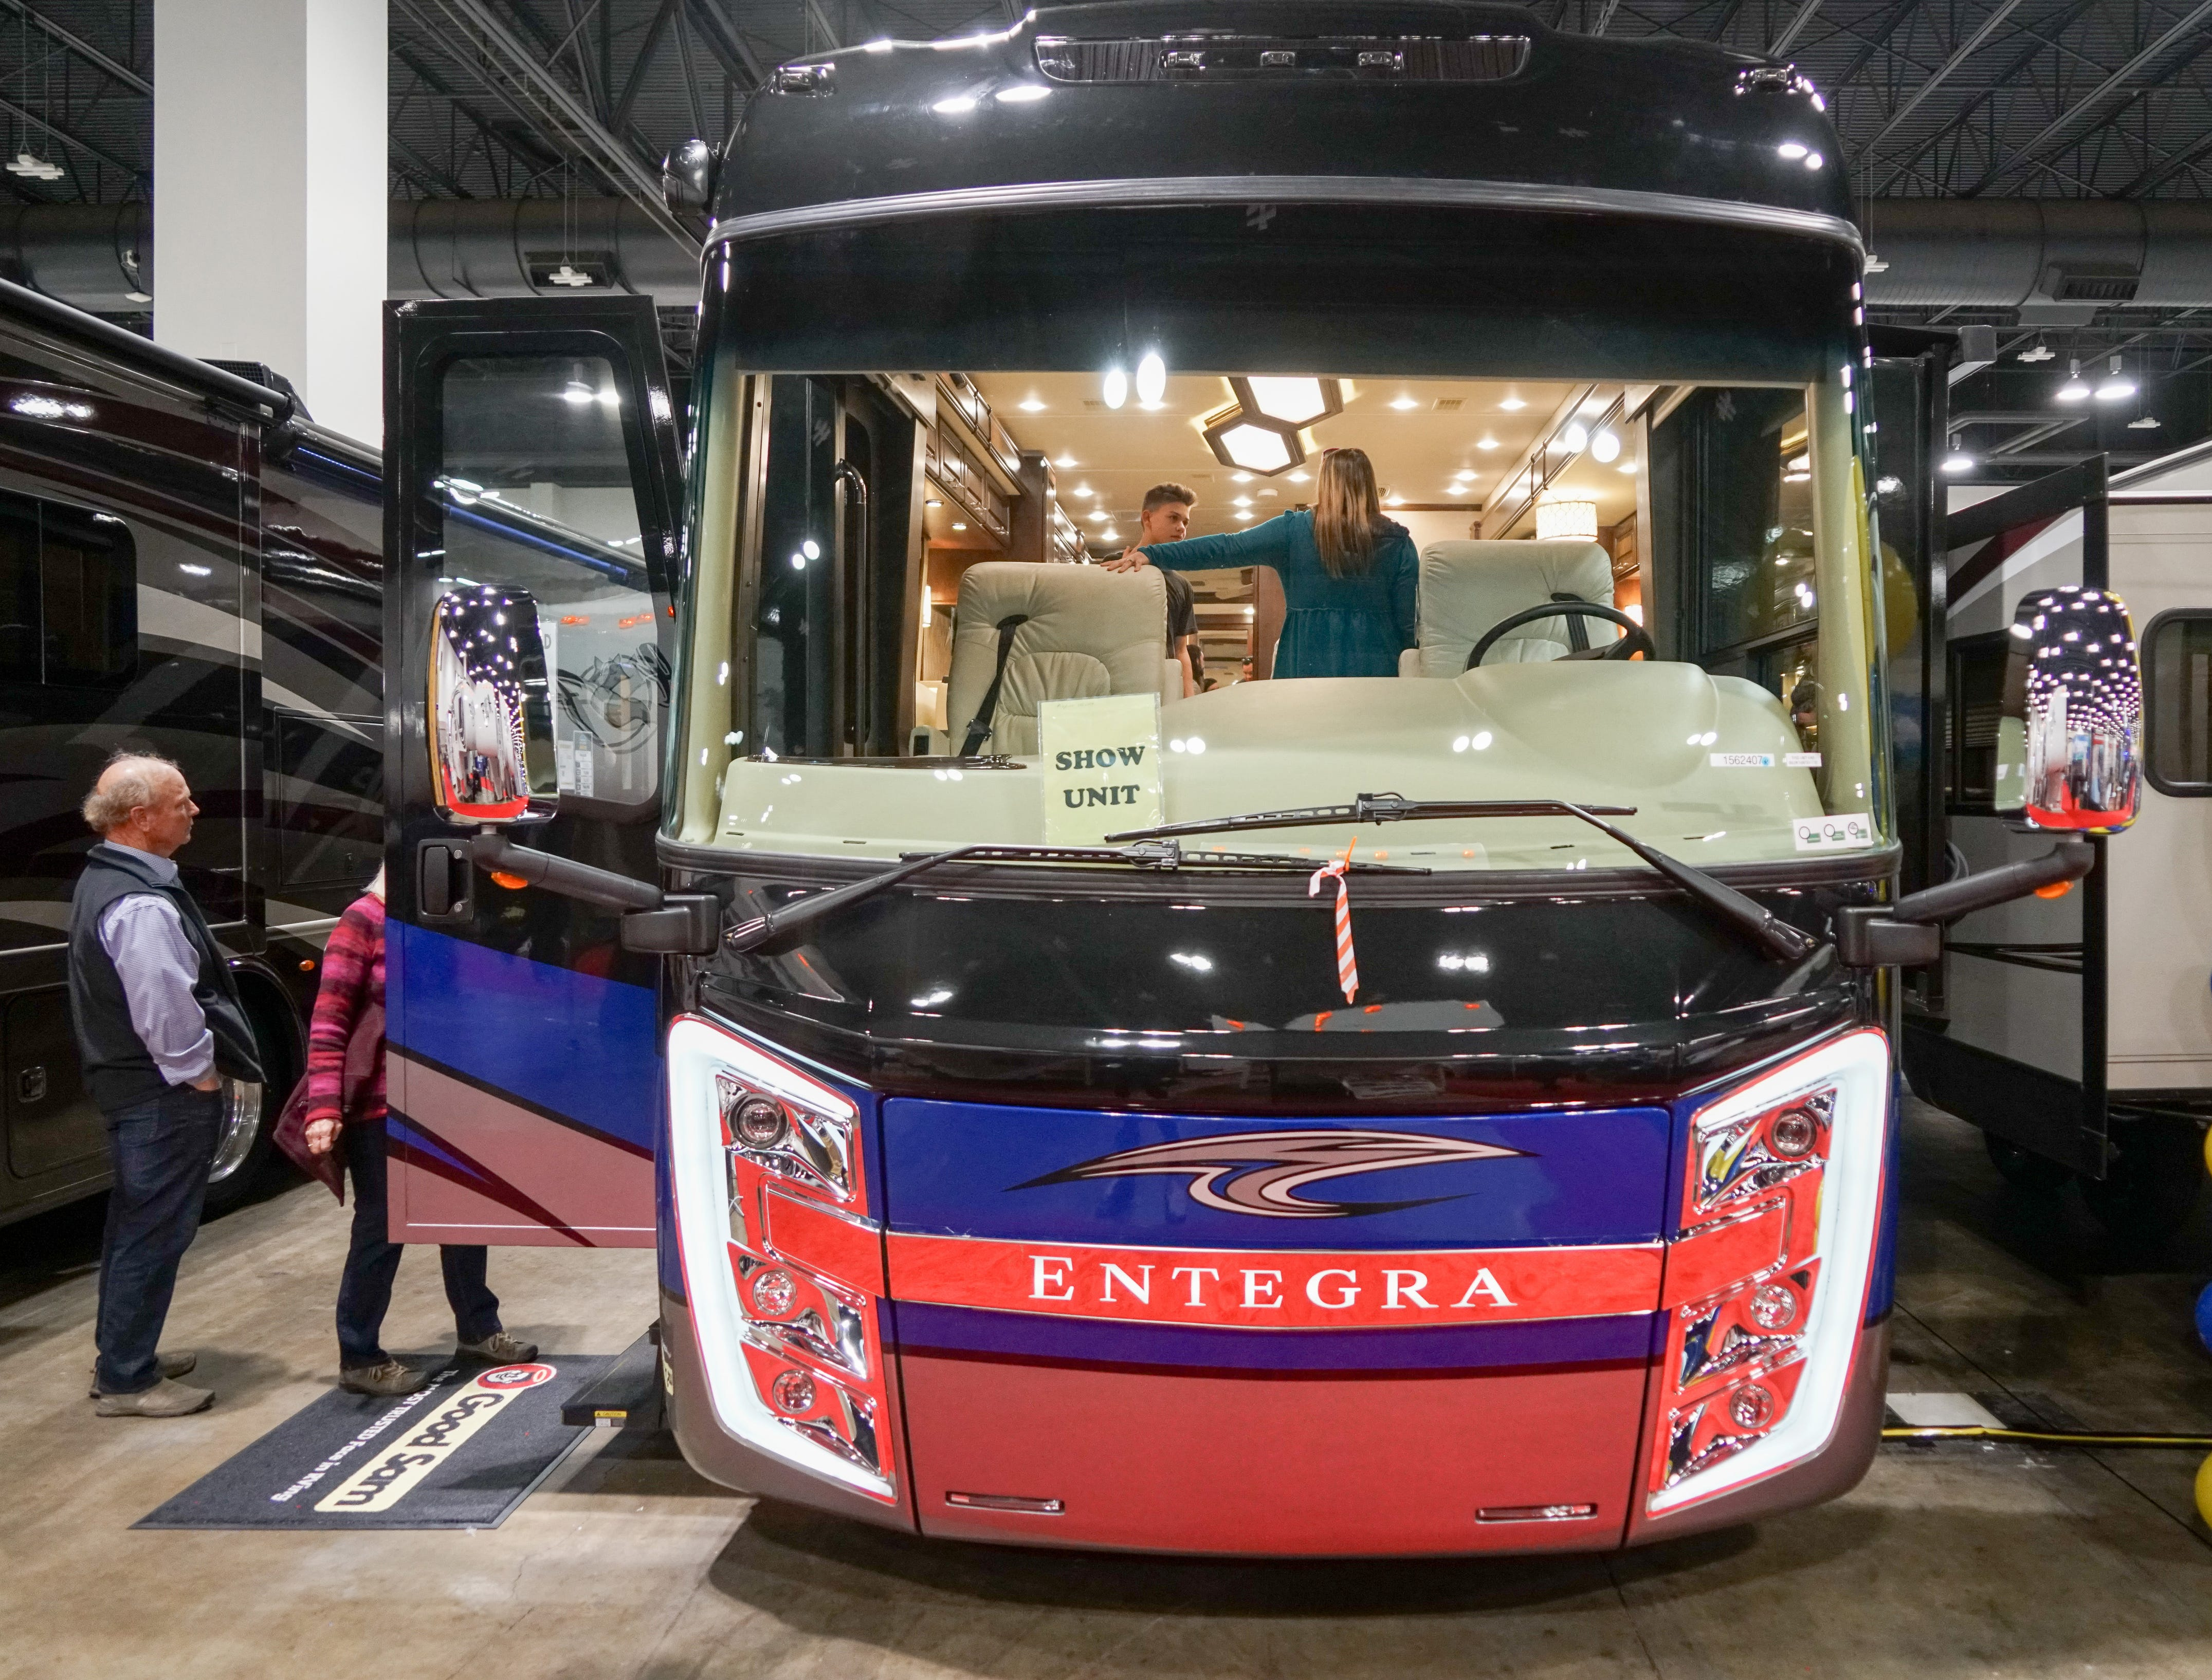 This RV, which is based on a bus chassis, is on sale for about $330,000.